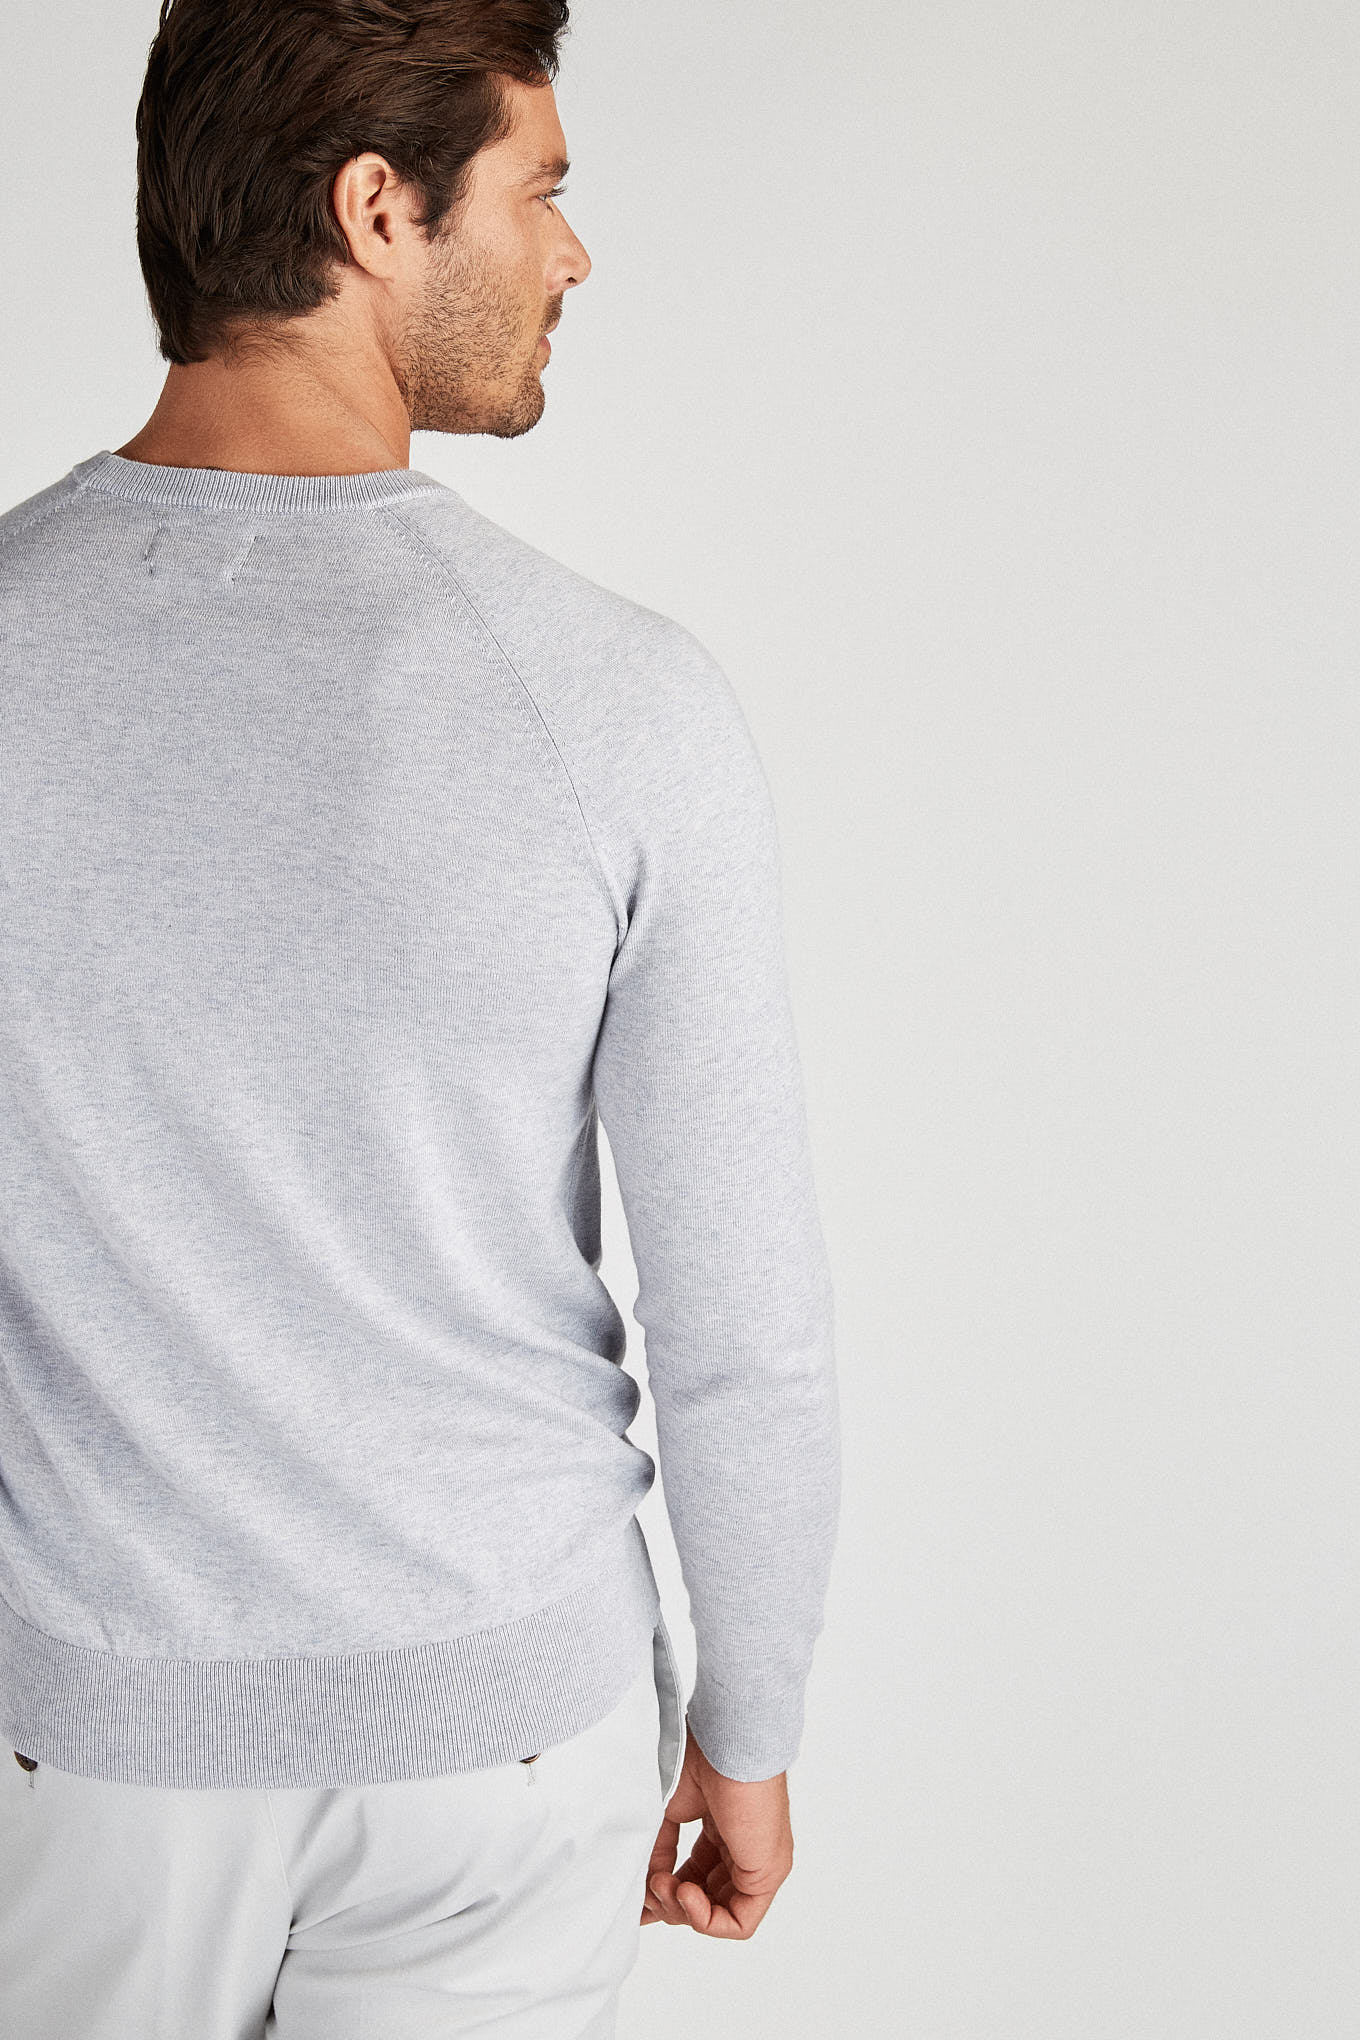 Sweater Medium Grey Casual Man